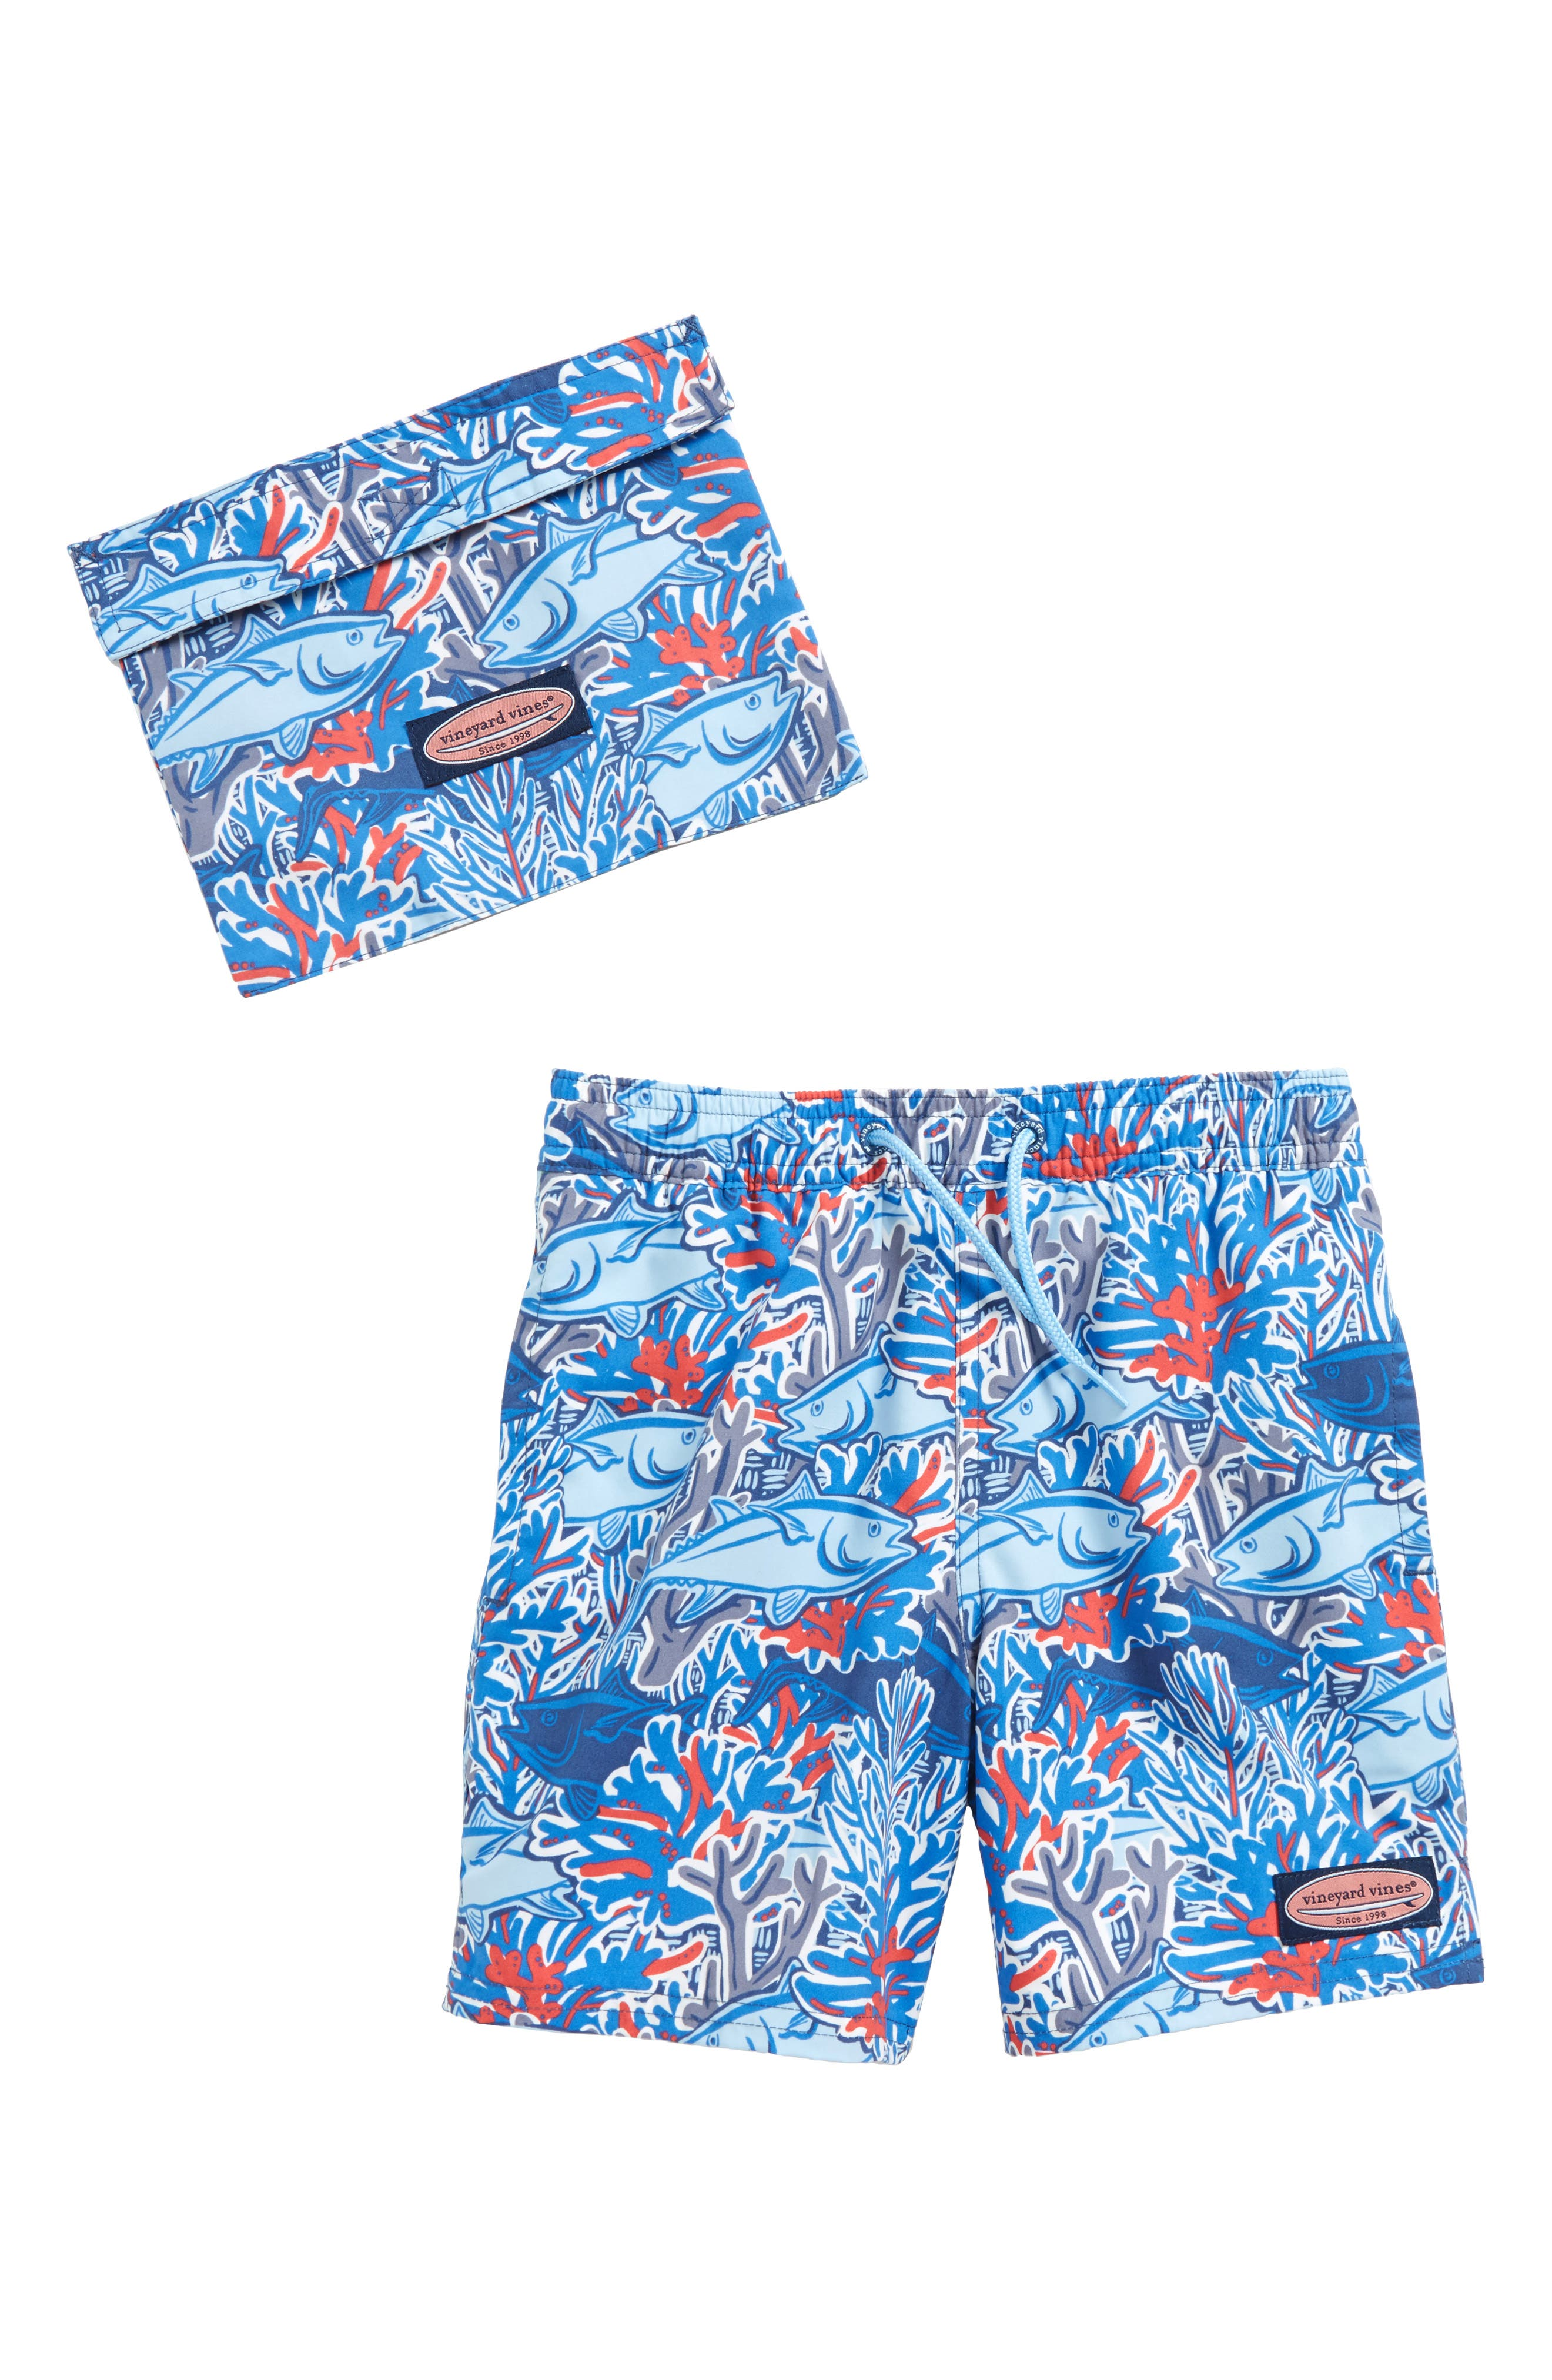 Alternate Image 1 Selected - vineyard vines Chappy Tuna in Coral Swim Trunks (Toddler Boys & Little Boys)